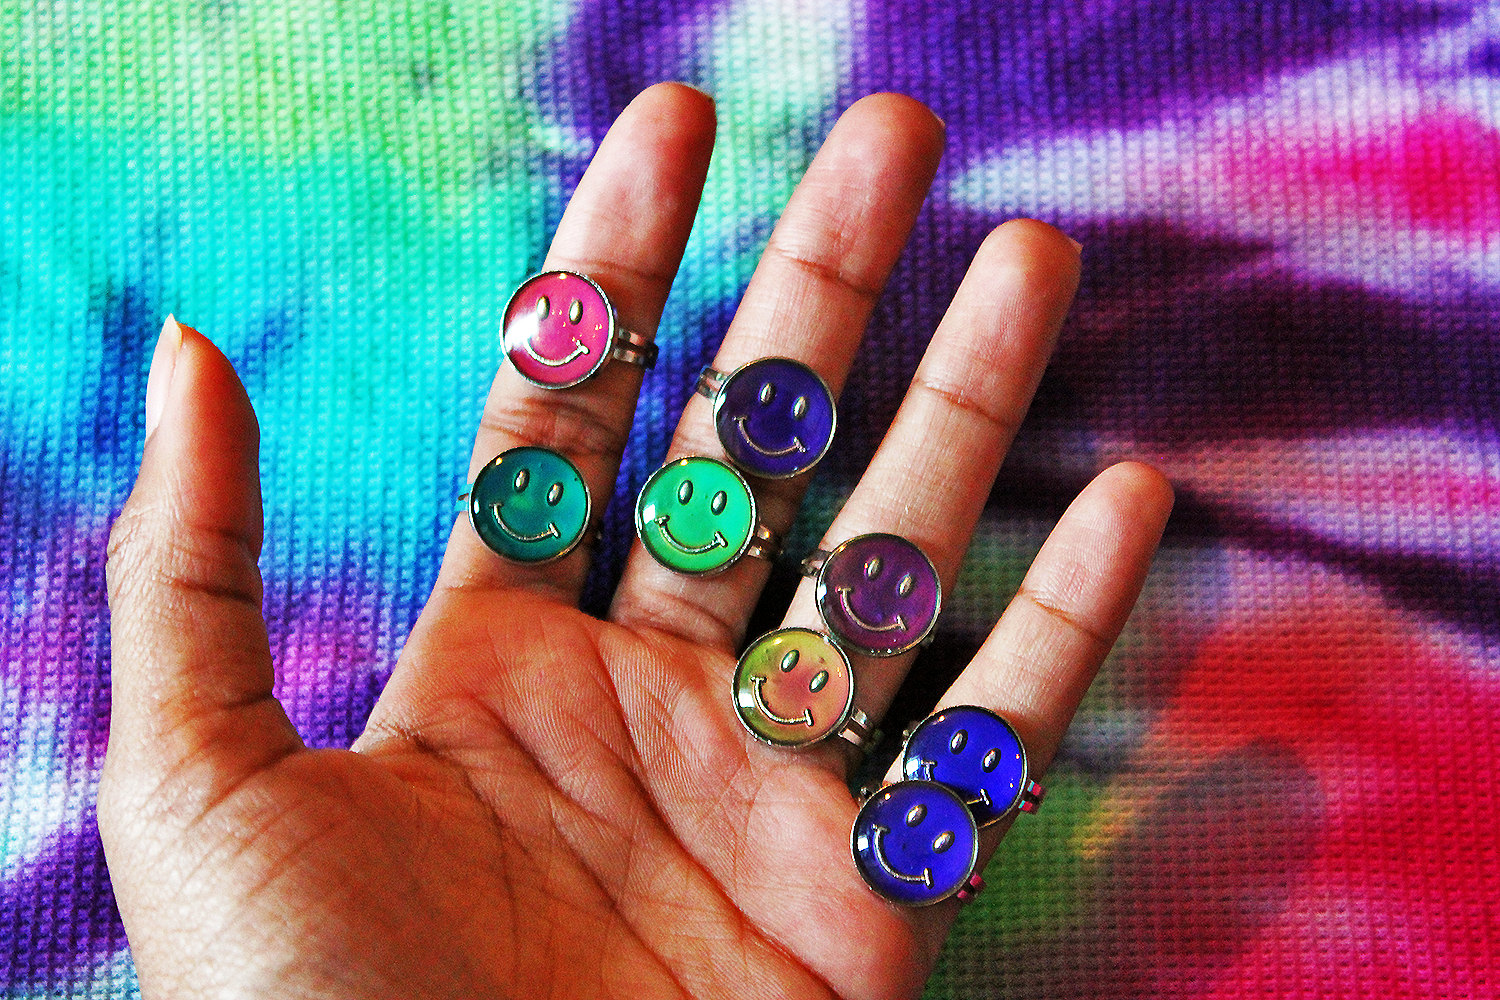 90's Sparkly / Glitter Smiley Adjustable Mood Rings